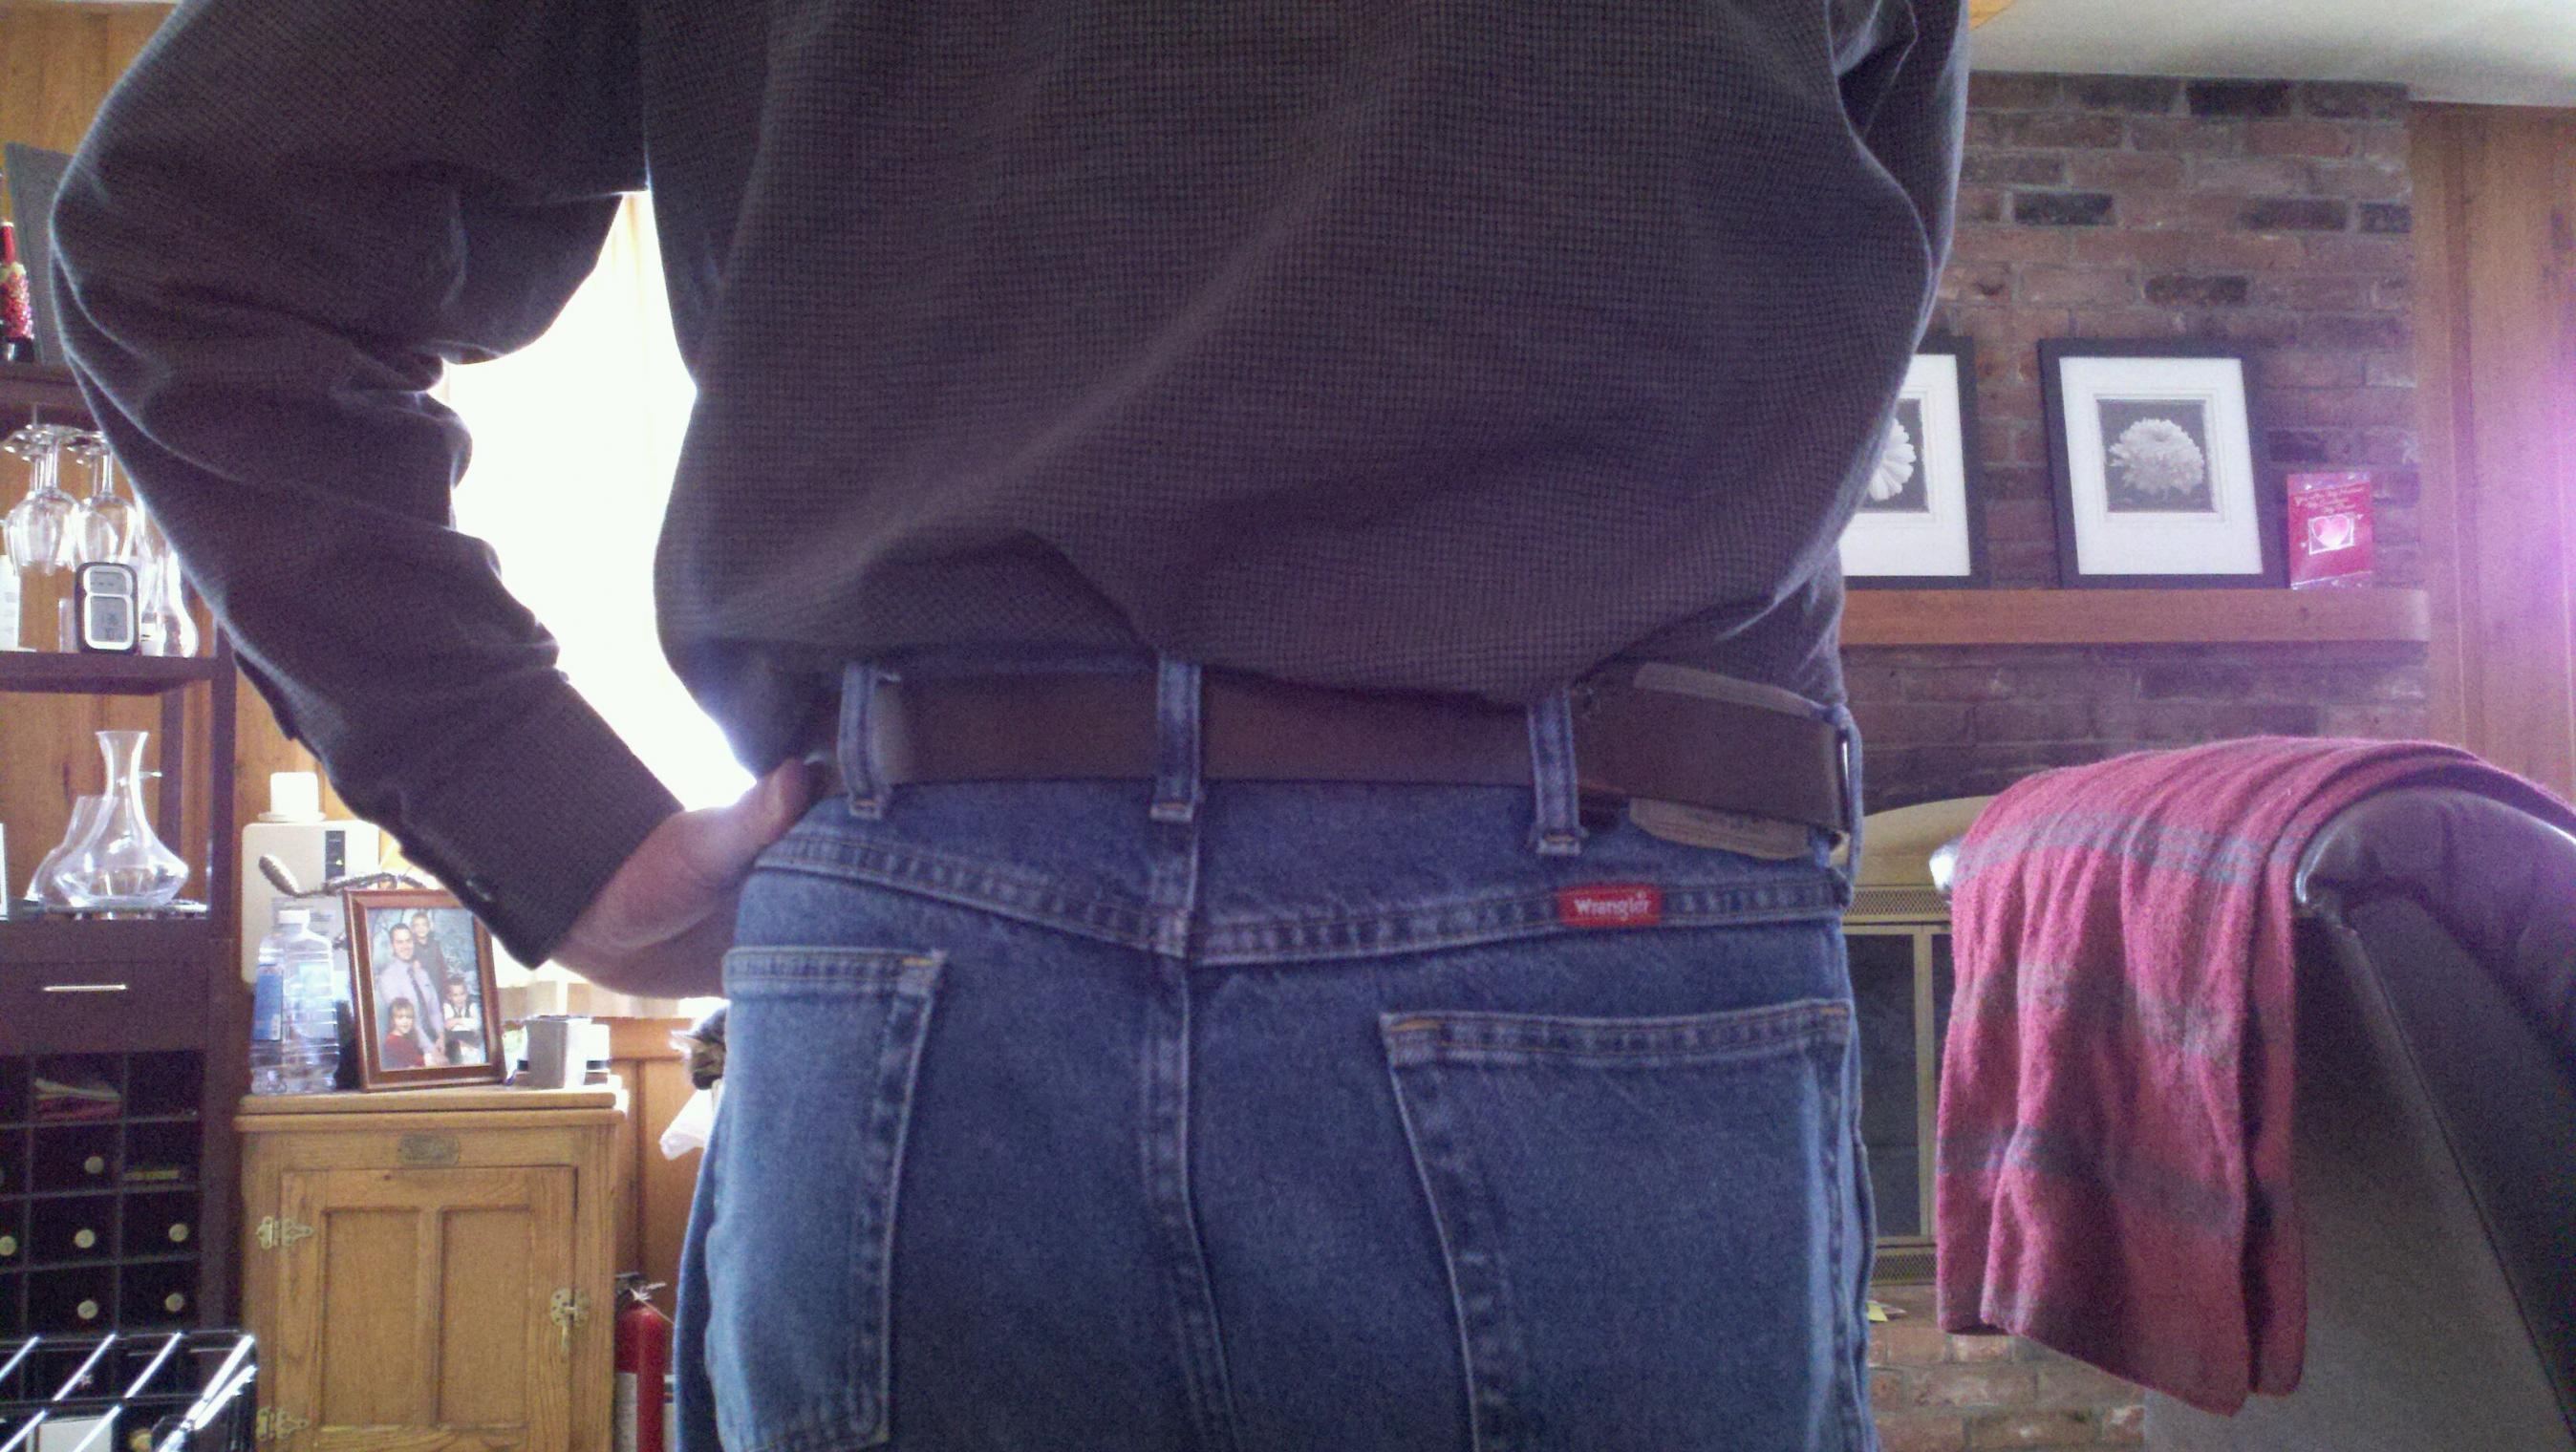 Let's See Your Pic's - How You Carry Concealed.-imagesequence00000004.jpg